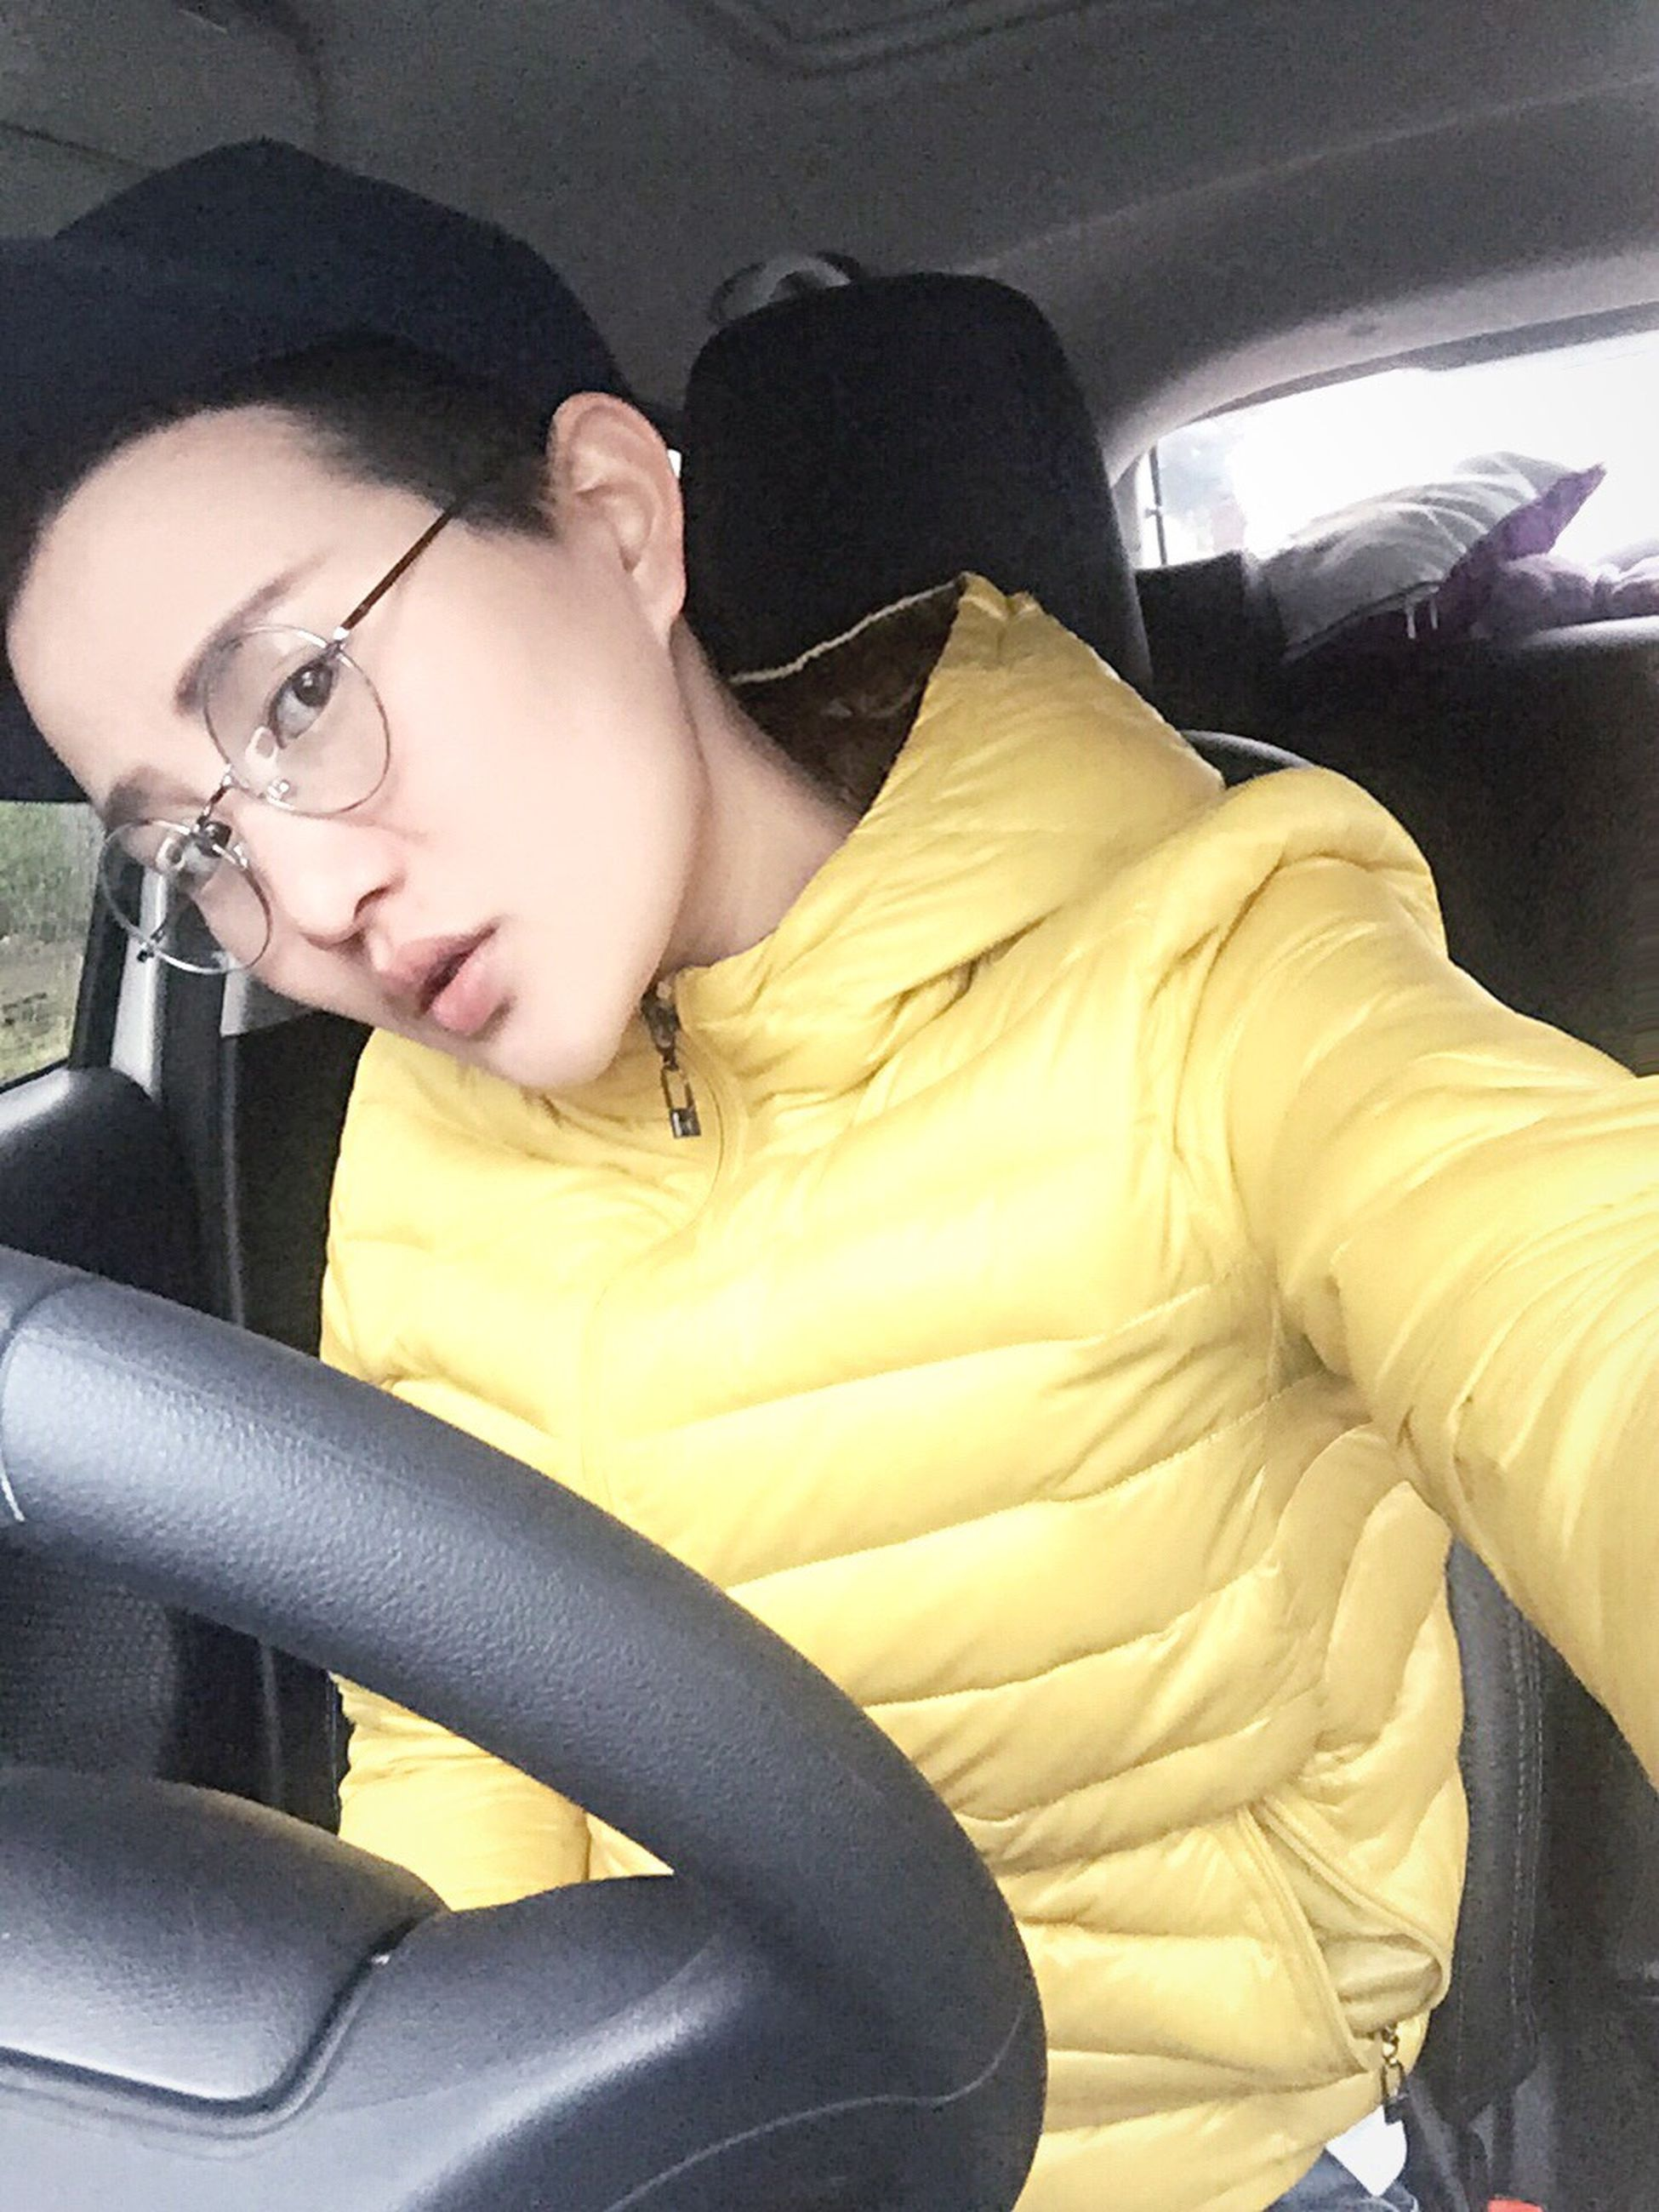 indoors, technology, person, sitting, lifestyles, young adult, vehicle interior, casual clothing, transportation, relaxation, front view, mode of transport, home interior, vehicle seat, leisure activity, wireless technology, young men, three quarter length